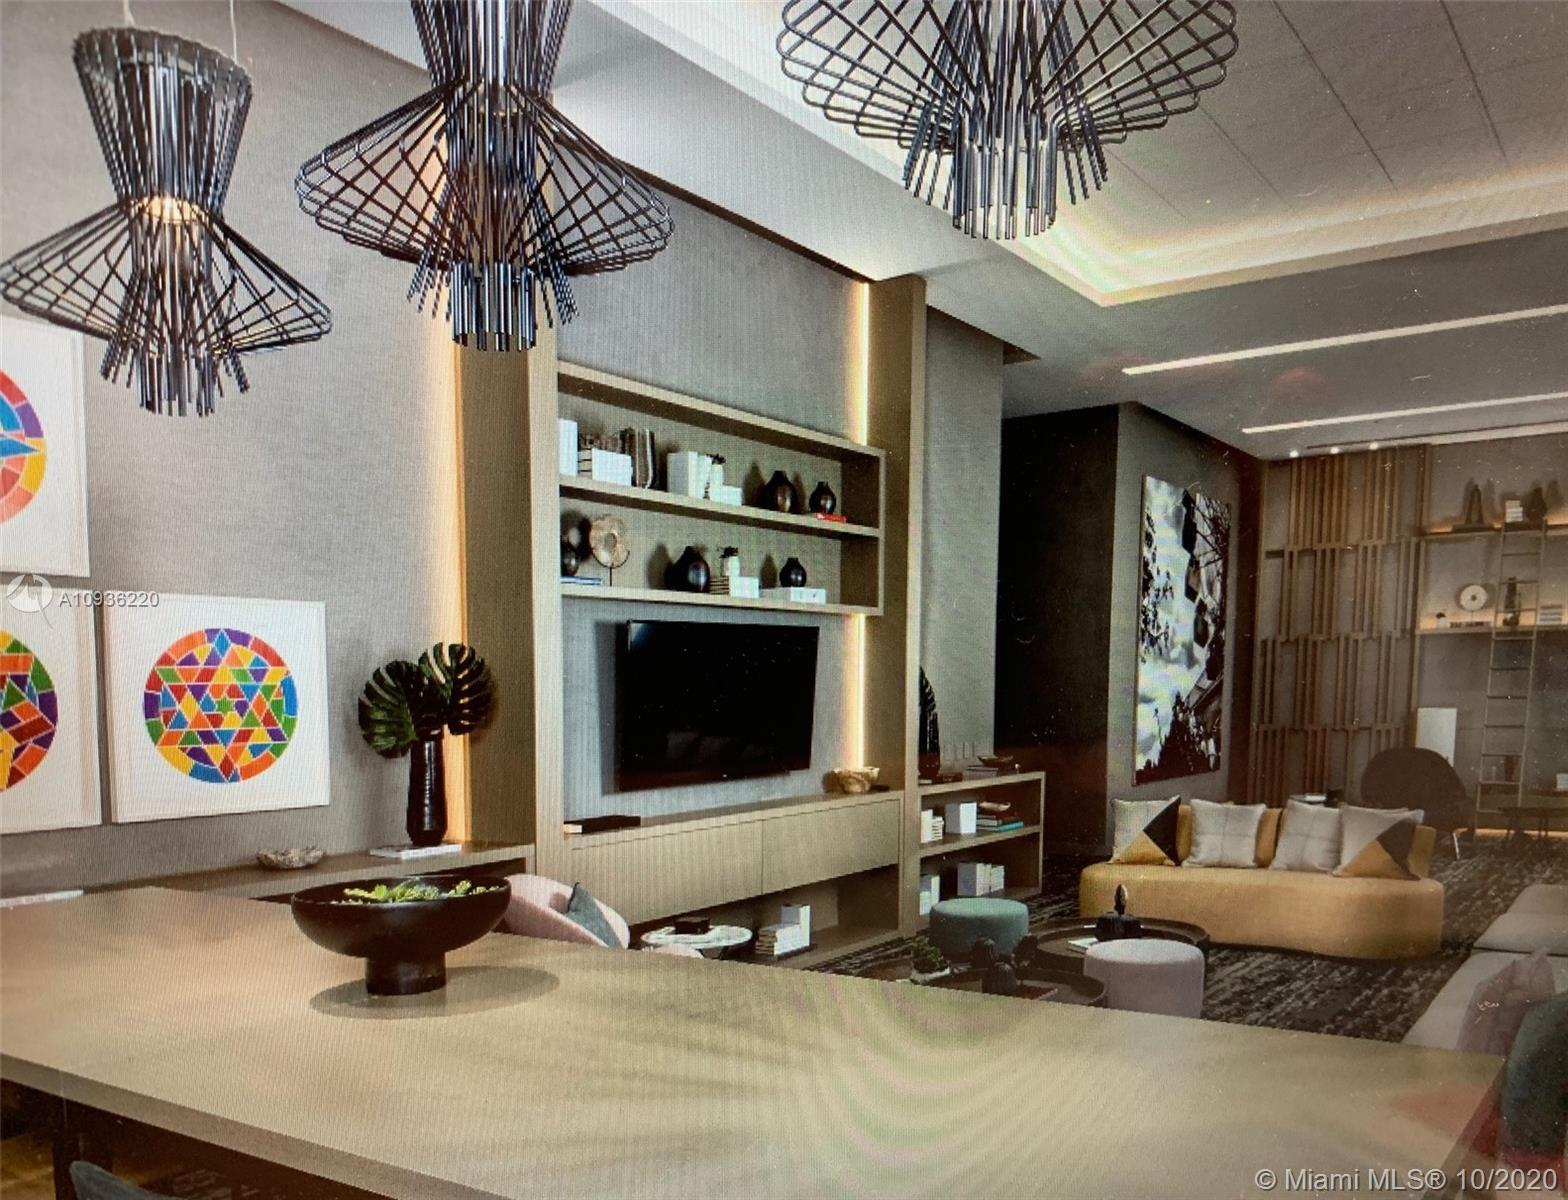 Attention investor!! Direct ocean view from all rooms, totally furnisher, access to the balcony from